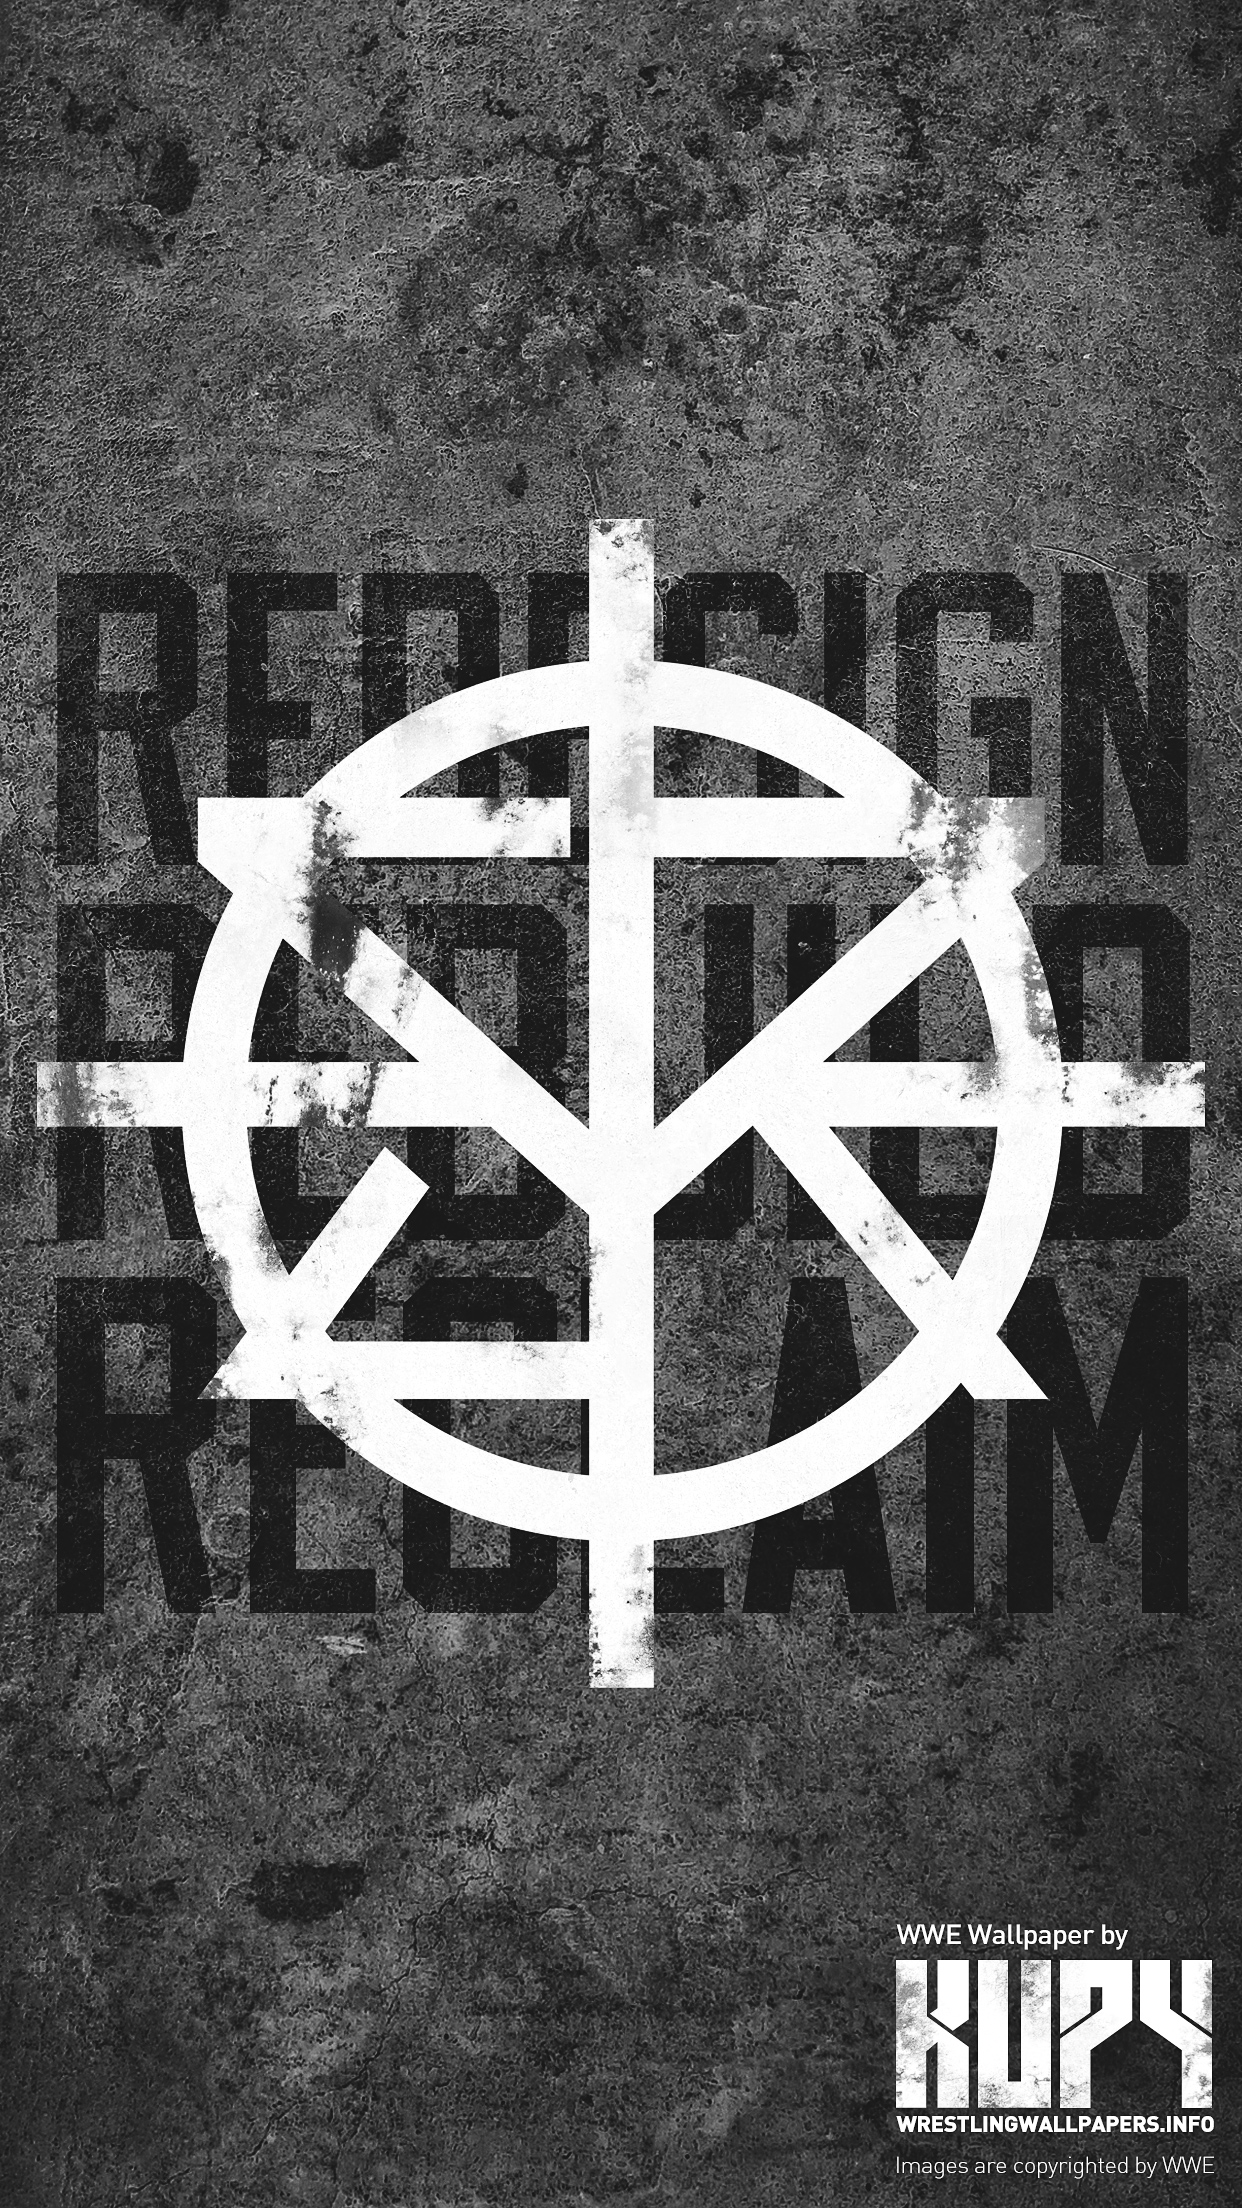 New Seth Rollins Redesign Rebuild Reclaim Wallpaper Kupy